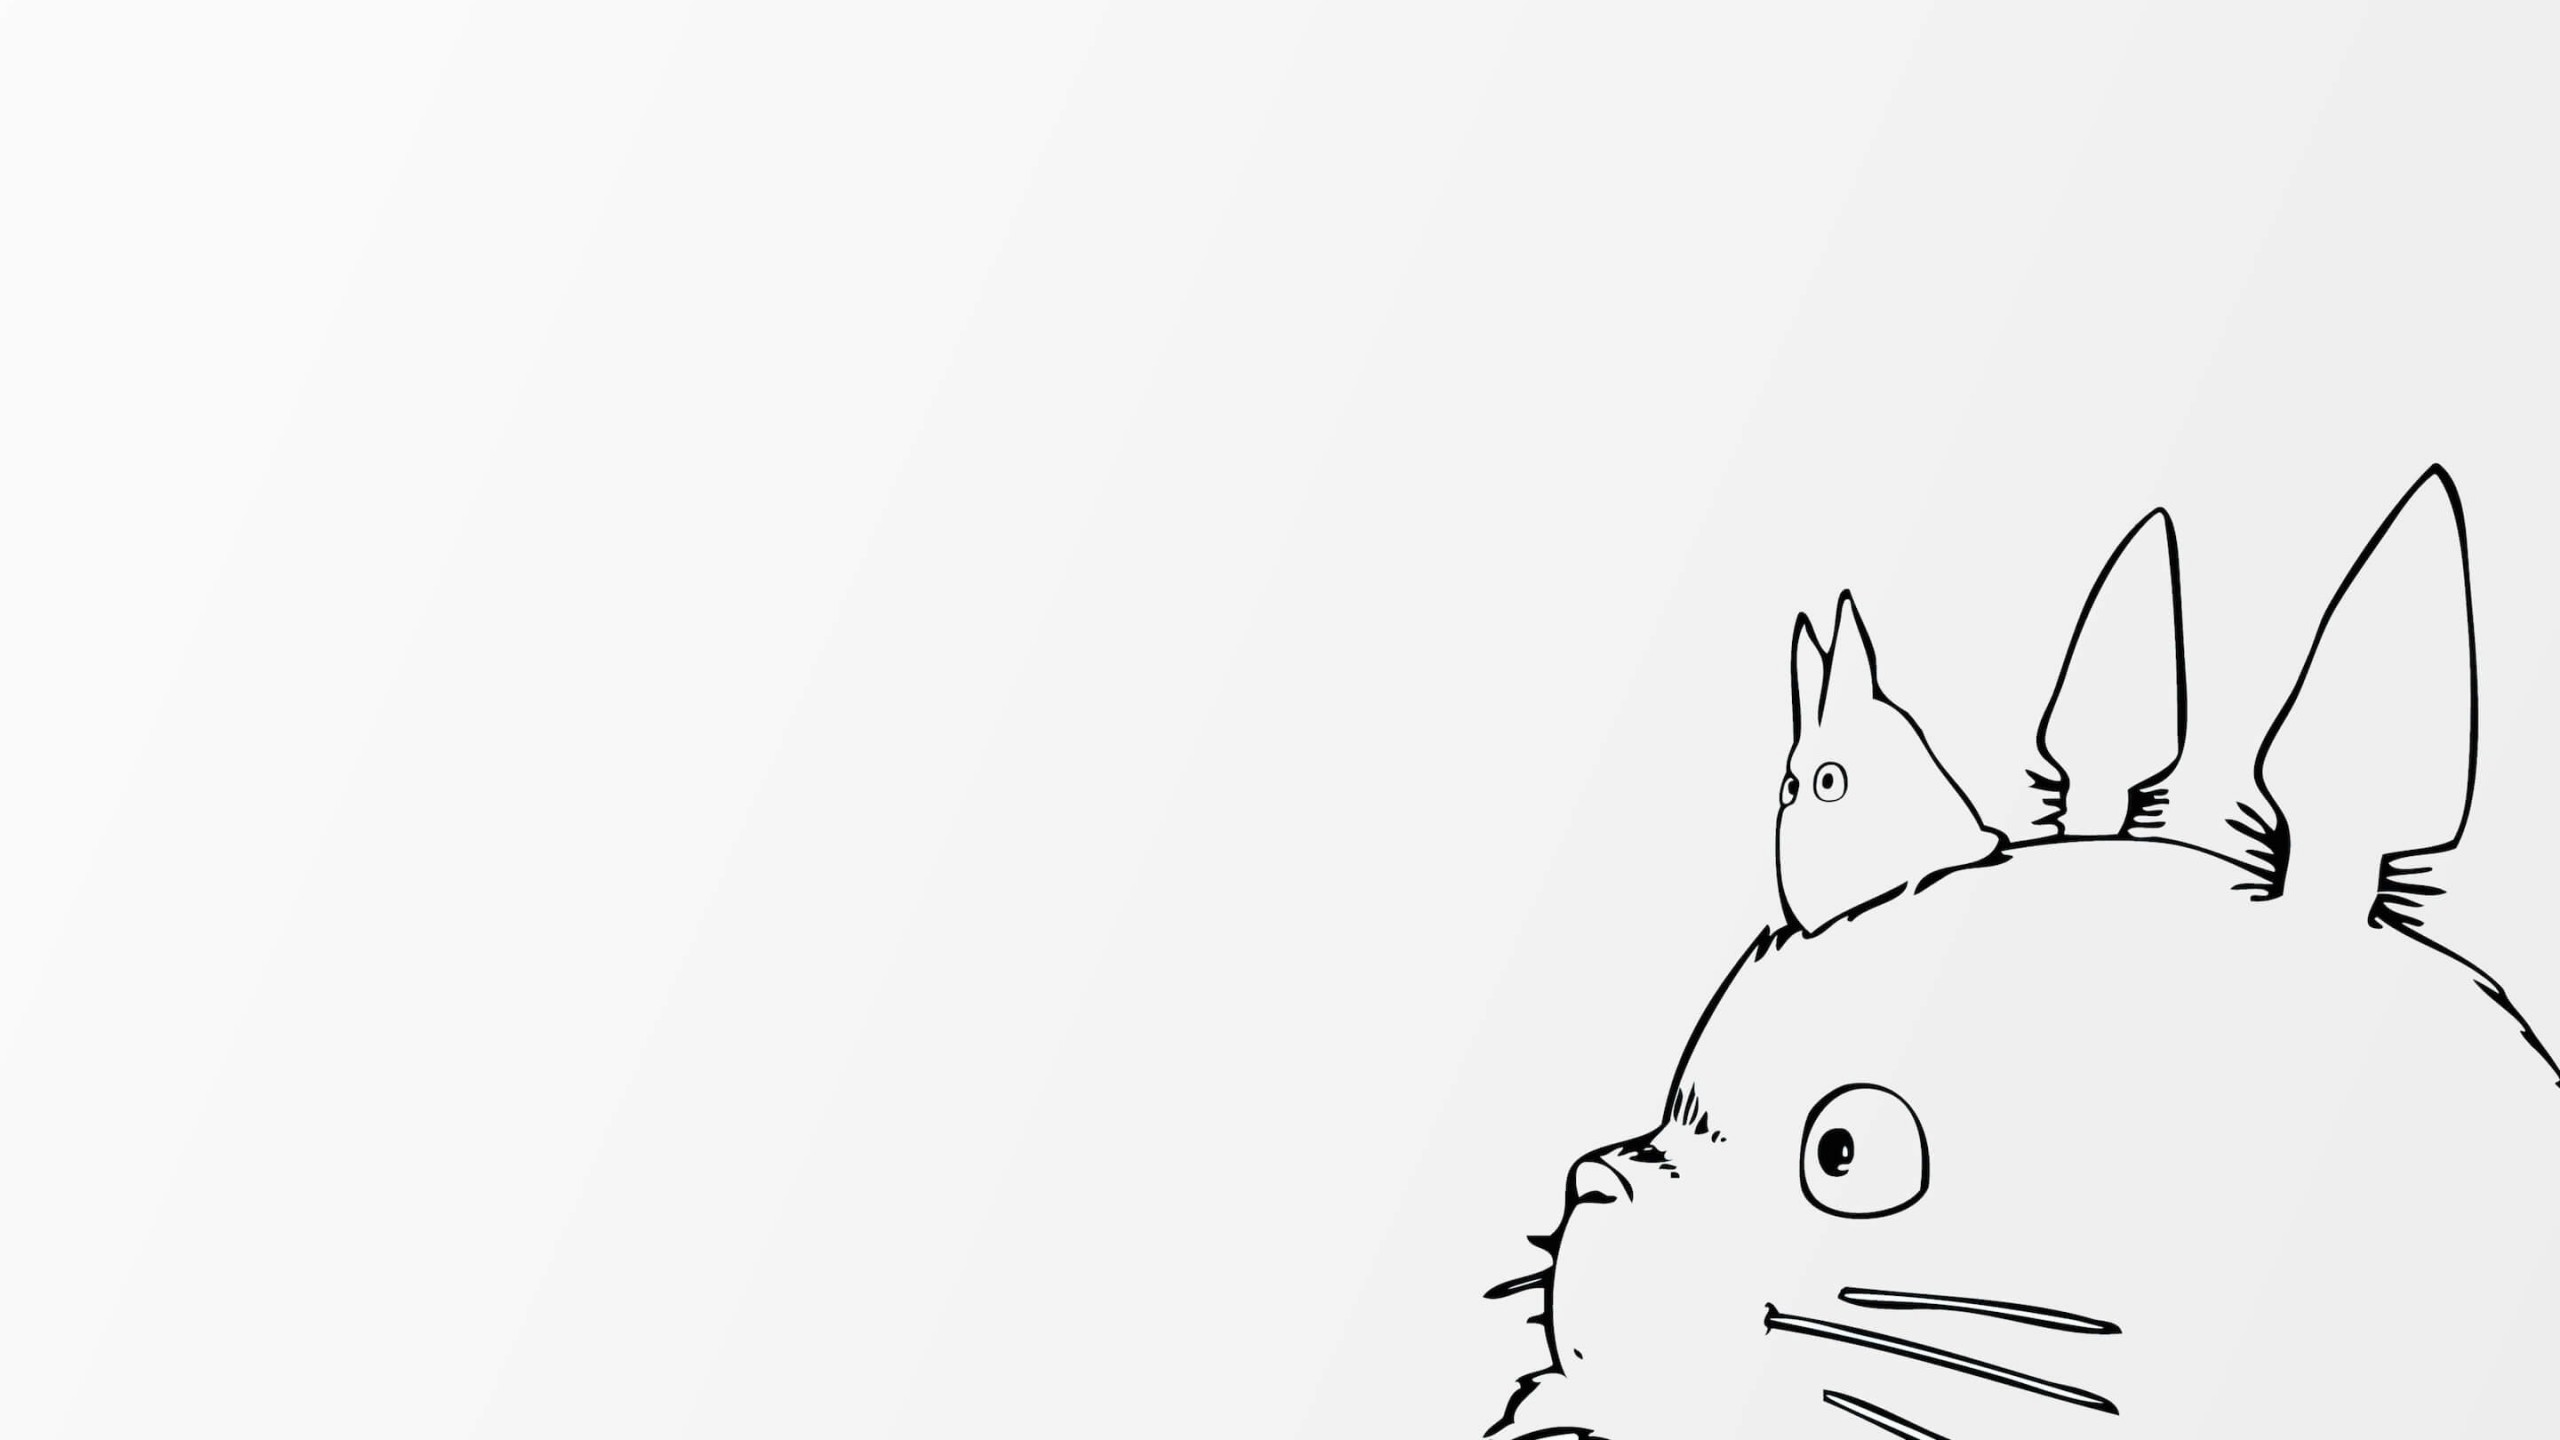 My Neighbor Totoro Wallpaper for Social Media YouTube Channel Art